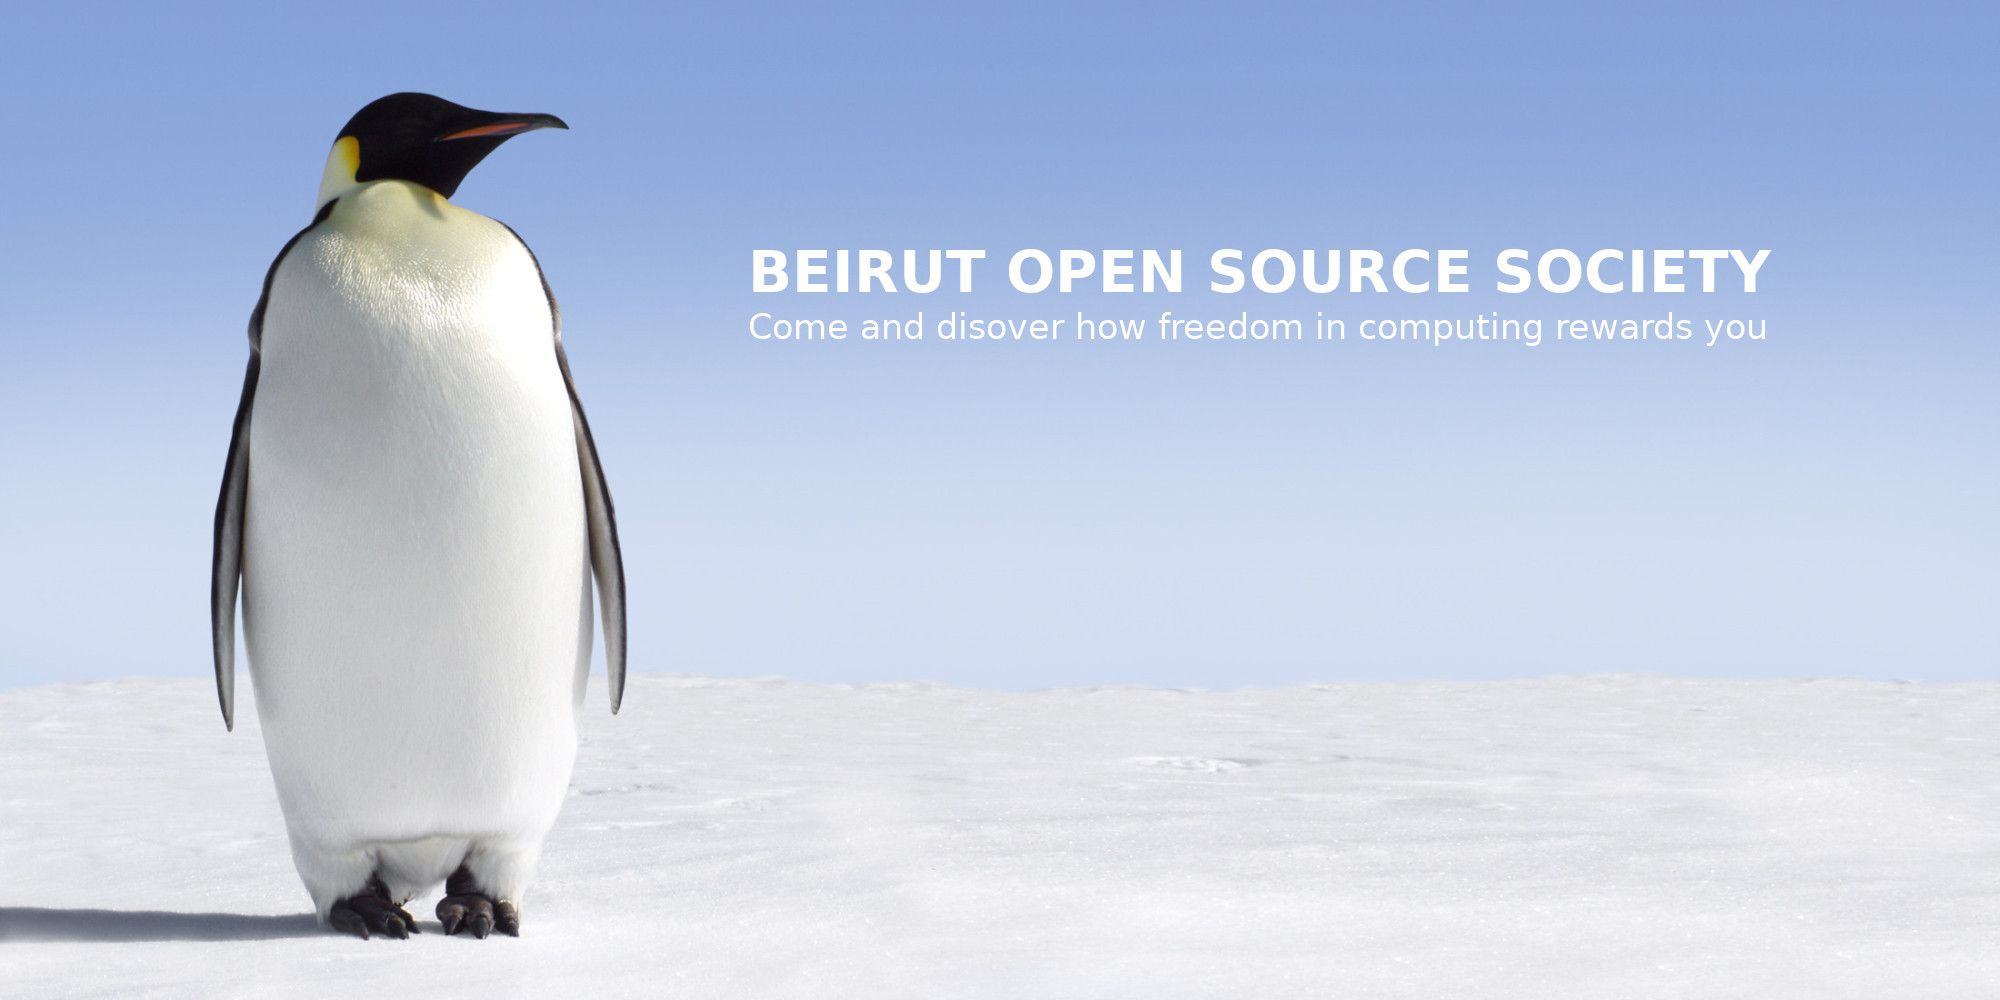 Beirut Open Source Society